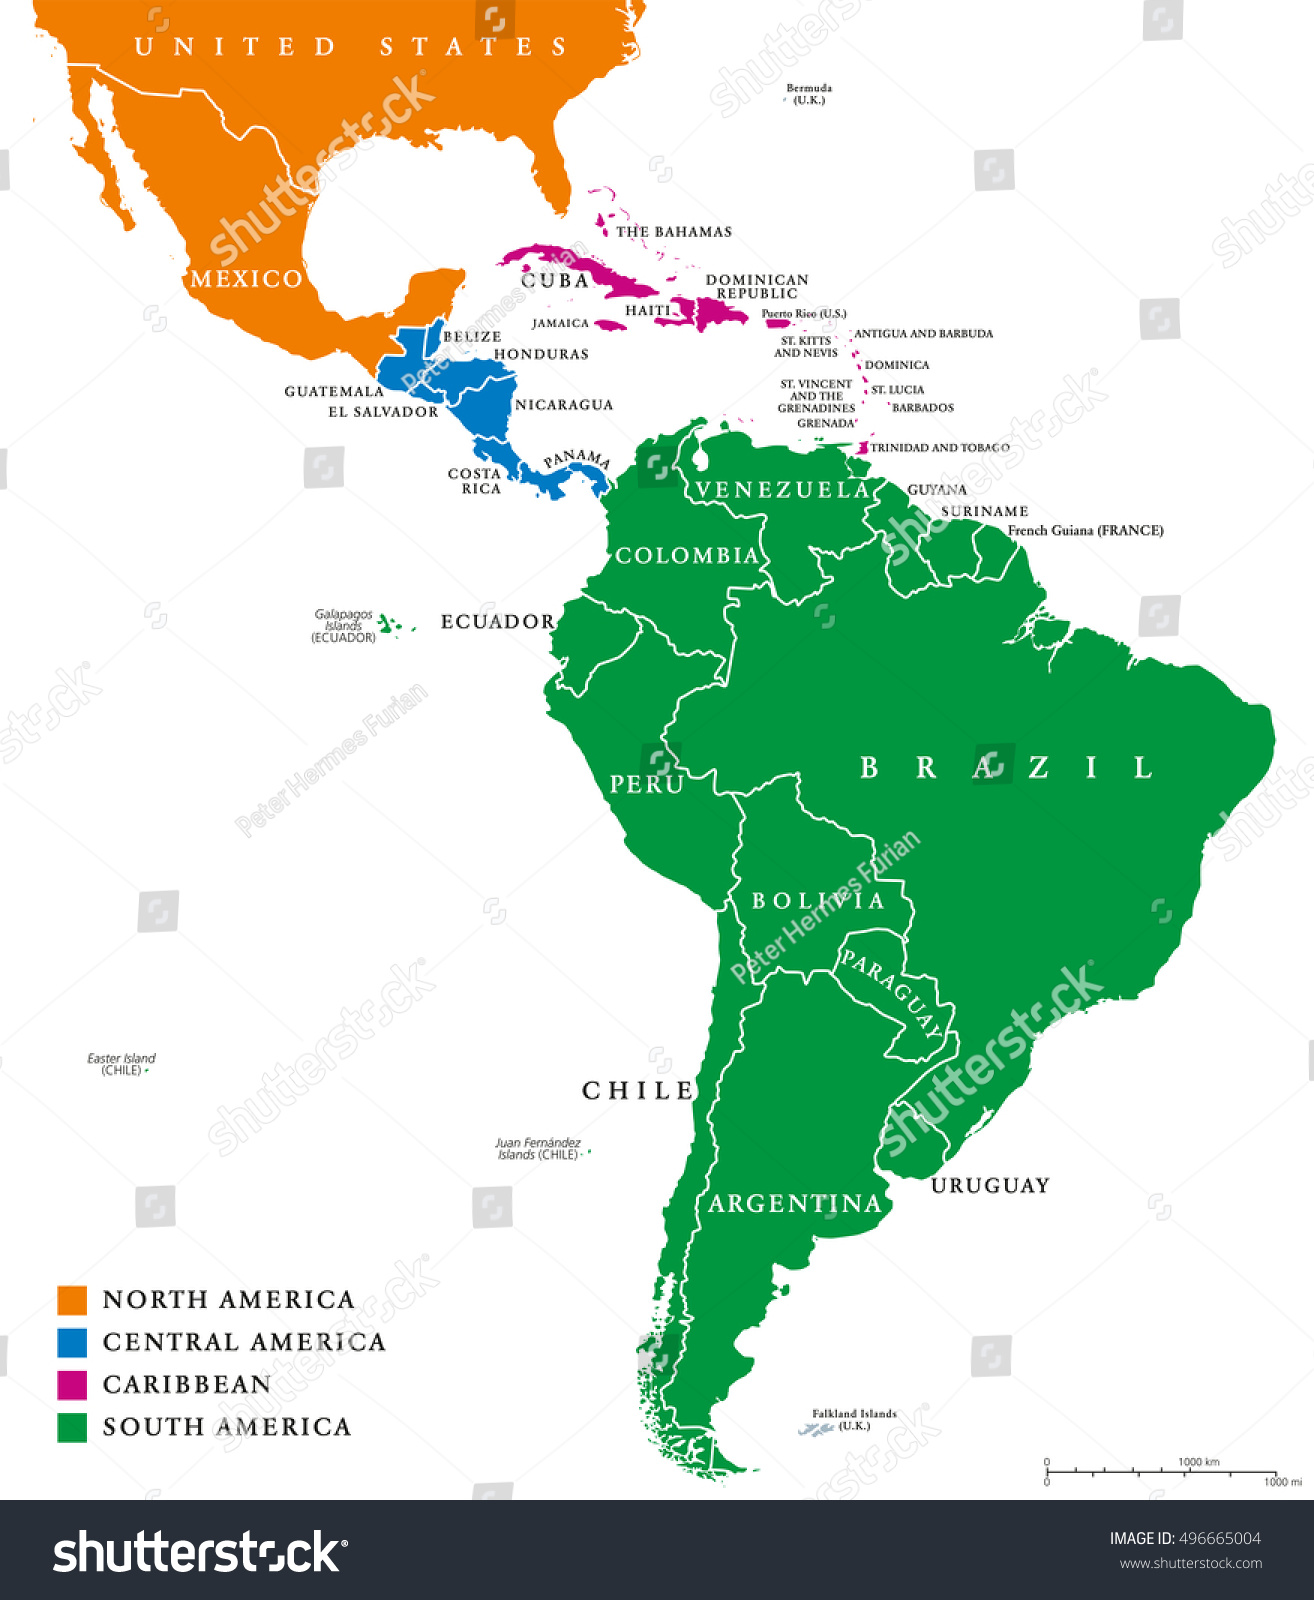 Latin America South America Map.Latin America Regions Map Subregions Caribbean Stock Vector Royalty